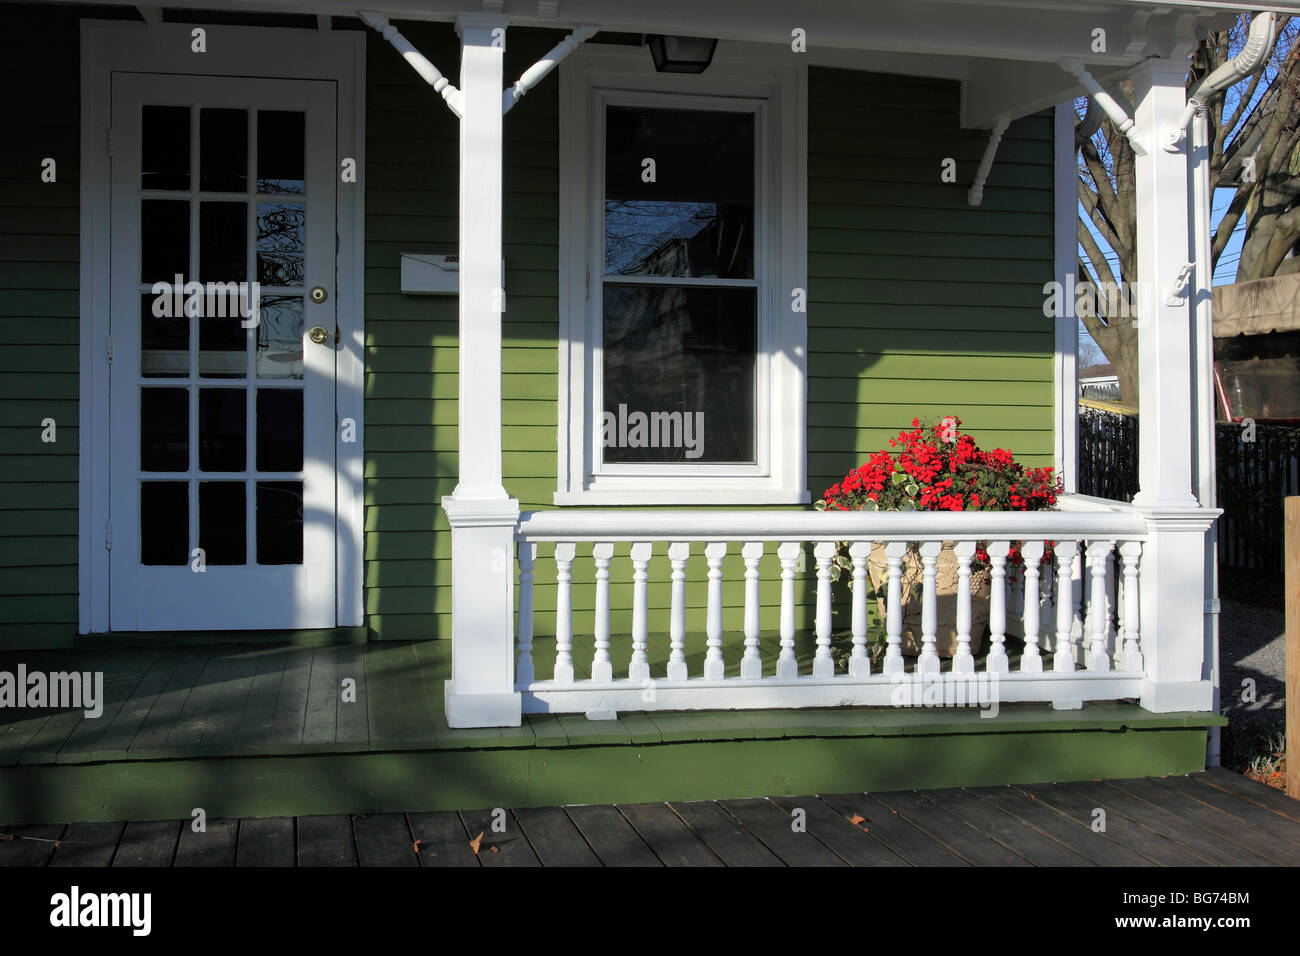 Front entrance and porch of home, Greenport, Long Island, NY - Stock Image